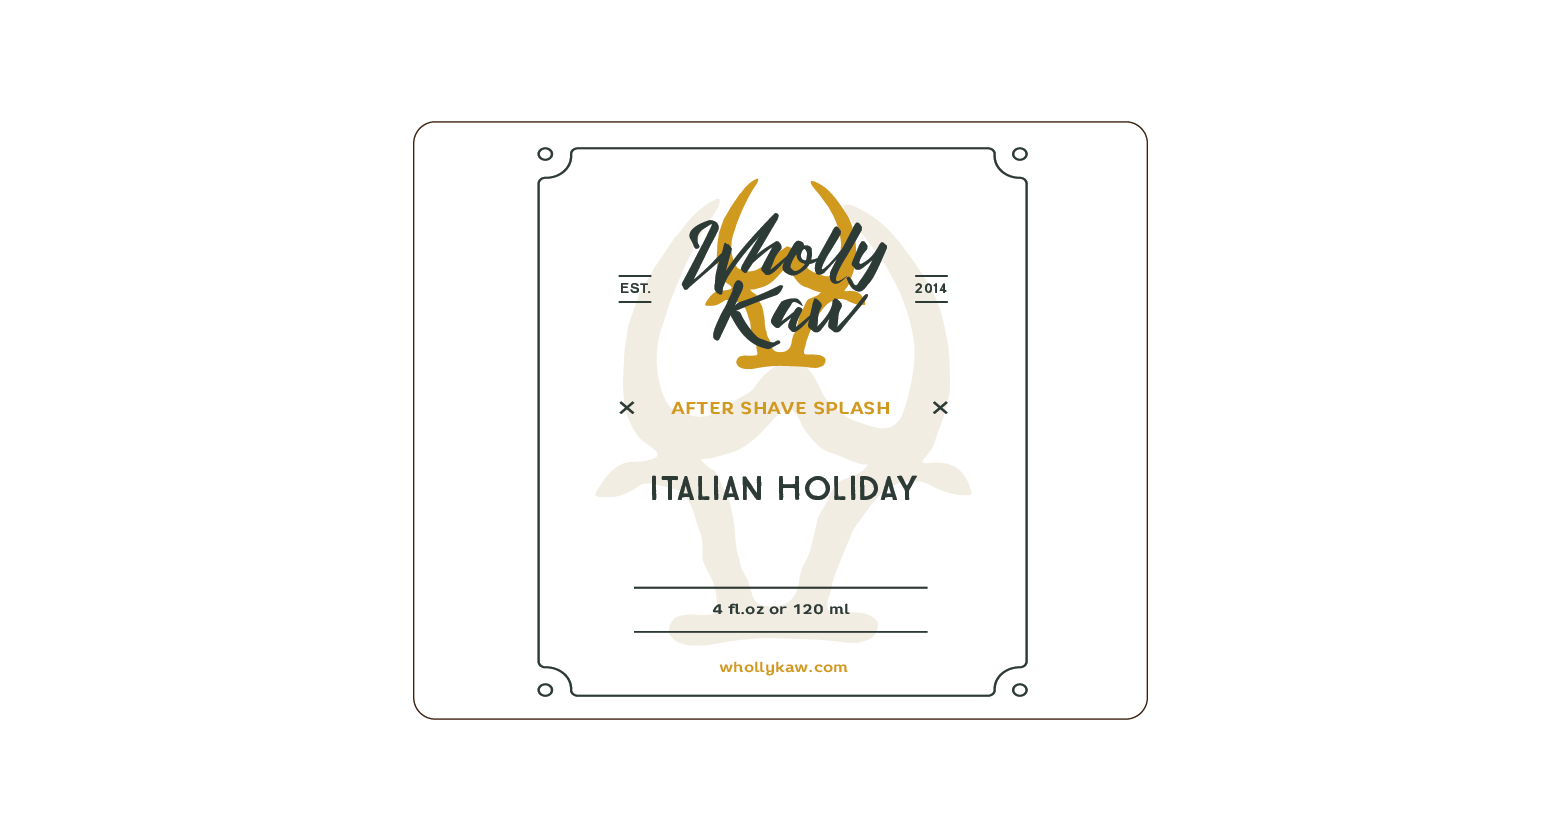 Wholly Kaw - Italian Holiday - Aftershave image